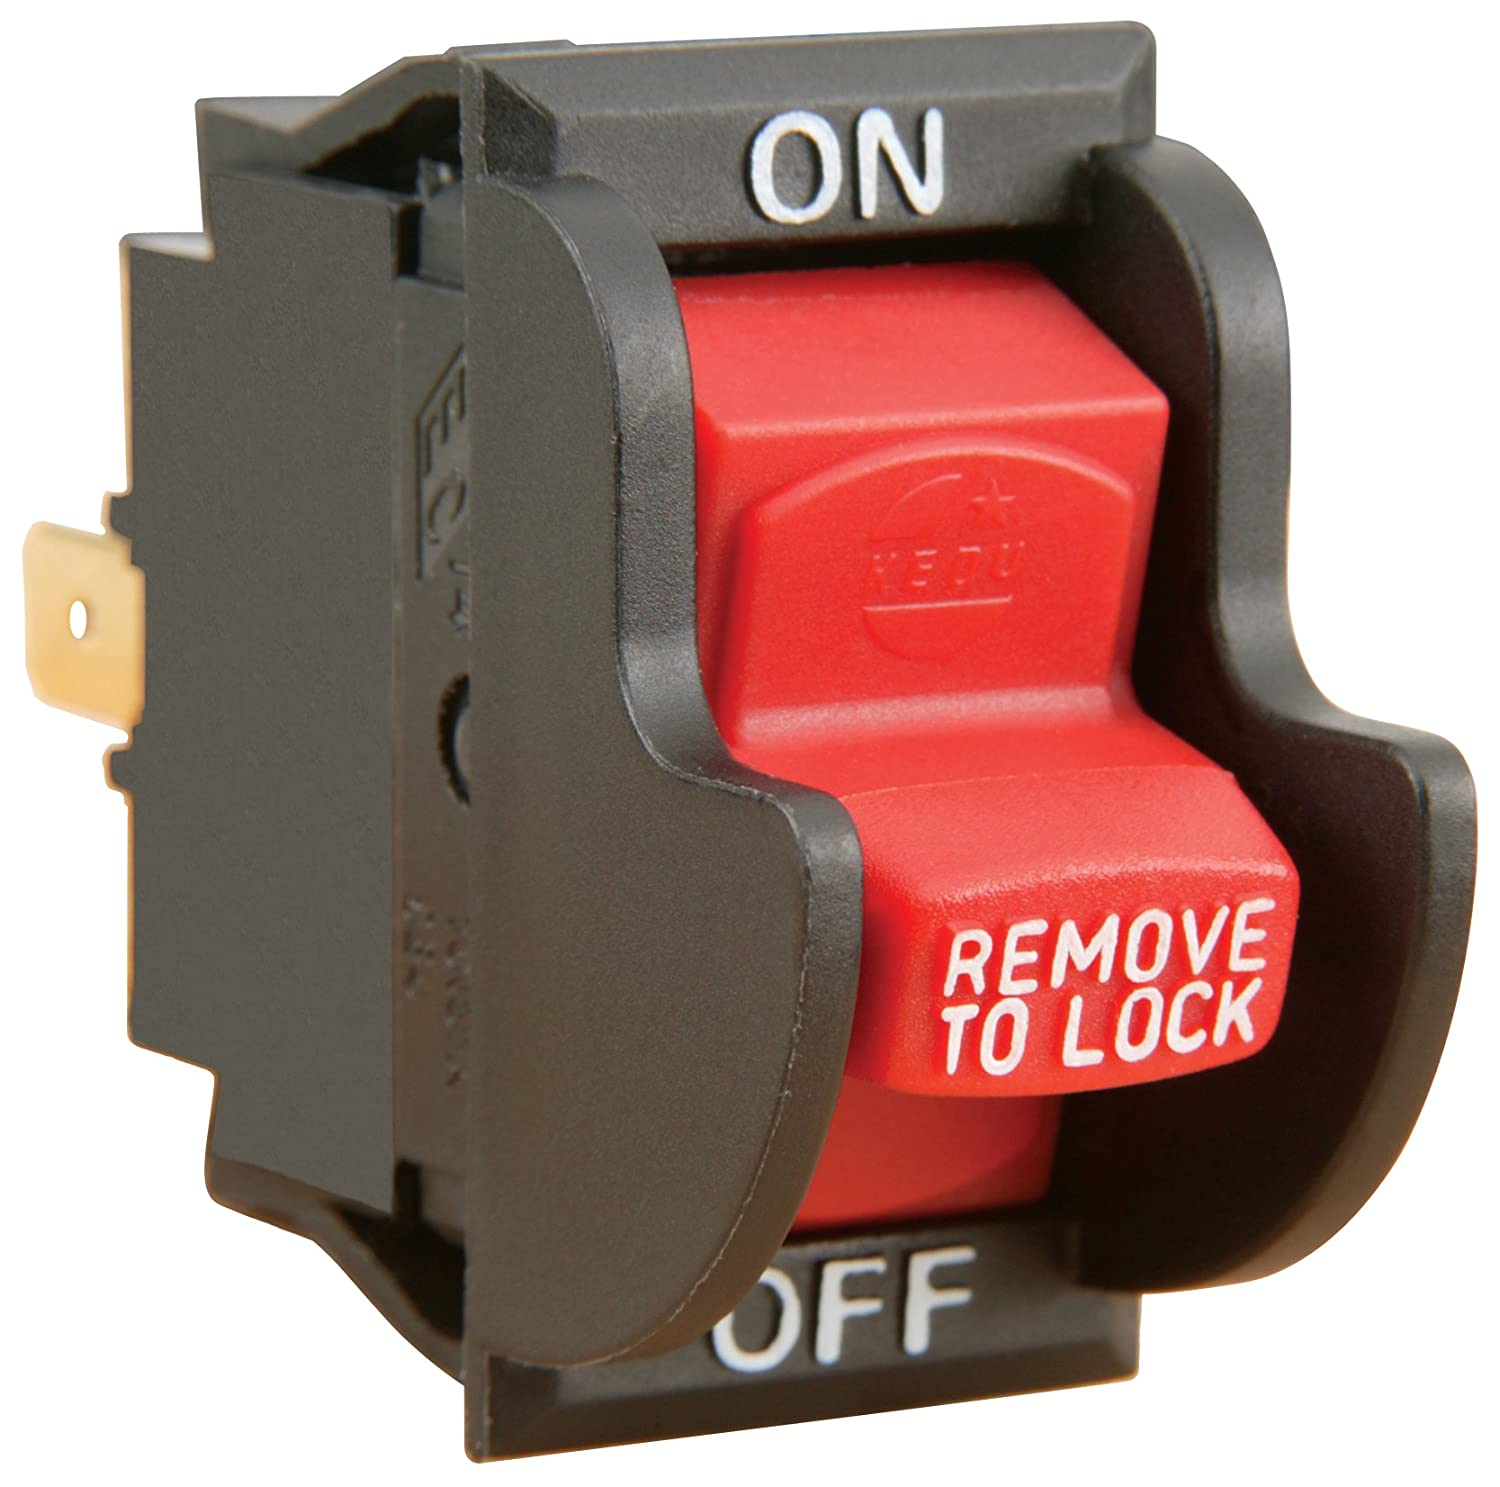 Woodstock D4163 Toggle Safety Switch Home Improvement 1 Style Choose On Off Rocker